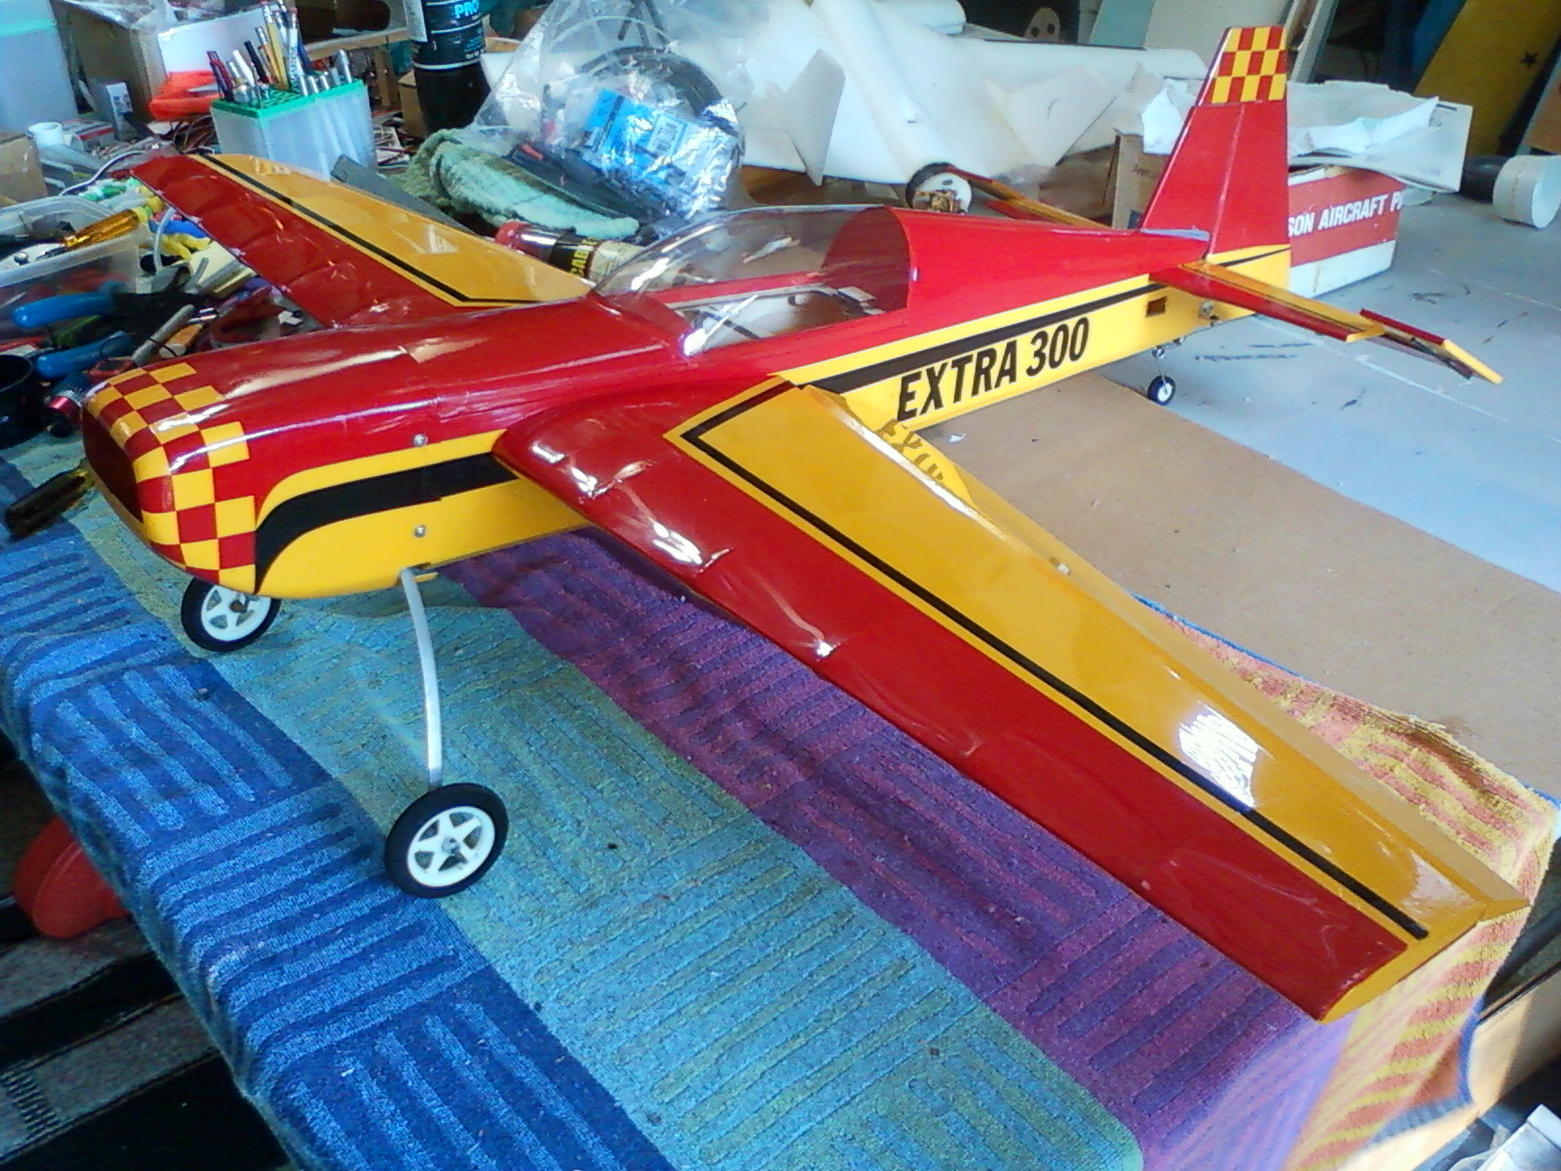 This is a Seagull Extra 300 that a friend gave me for repairing another plane of his. Mostly just needed some cleaning and minor detail work.